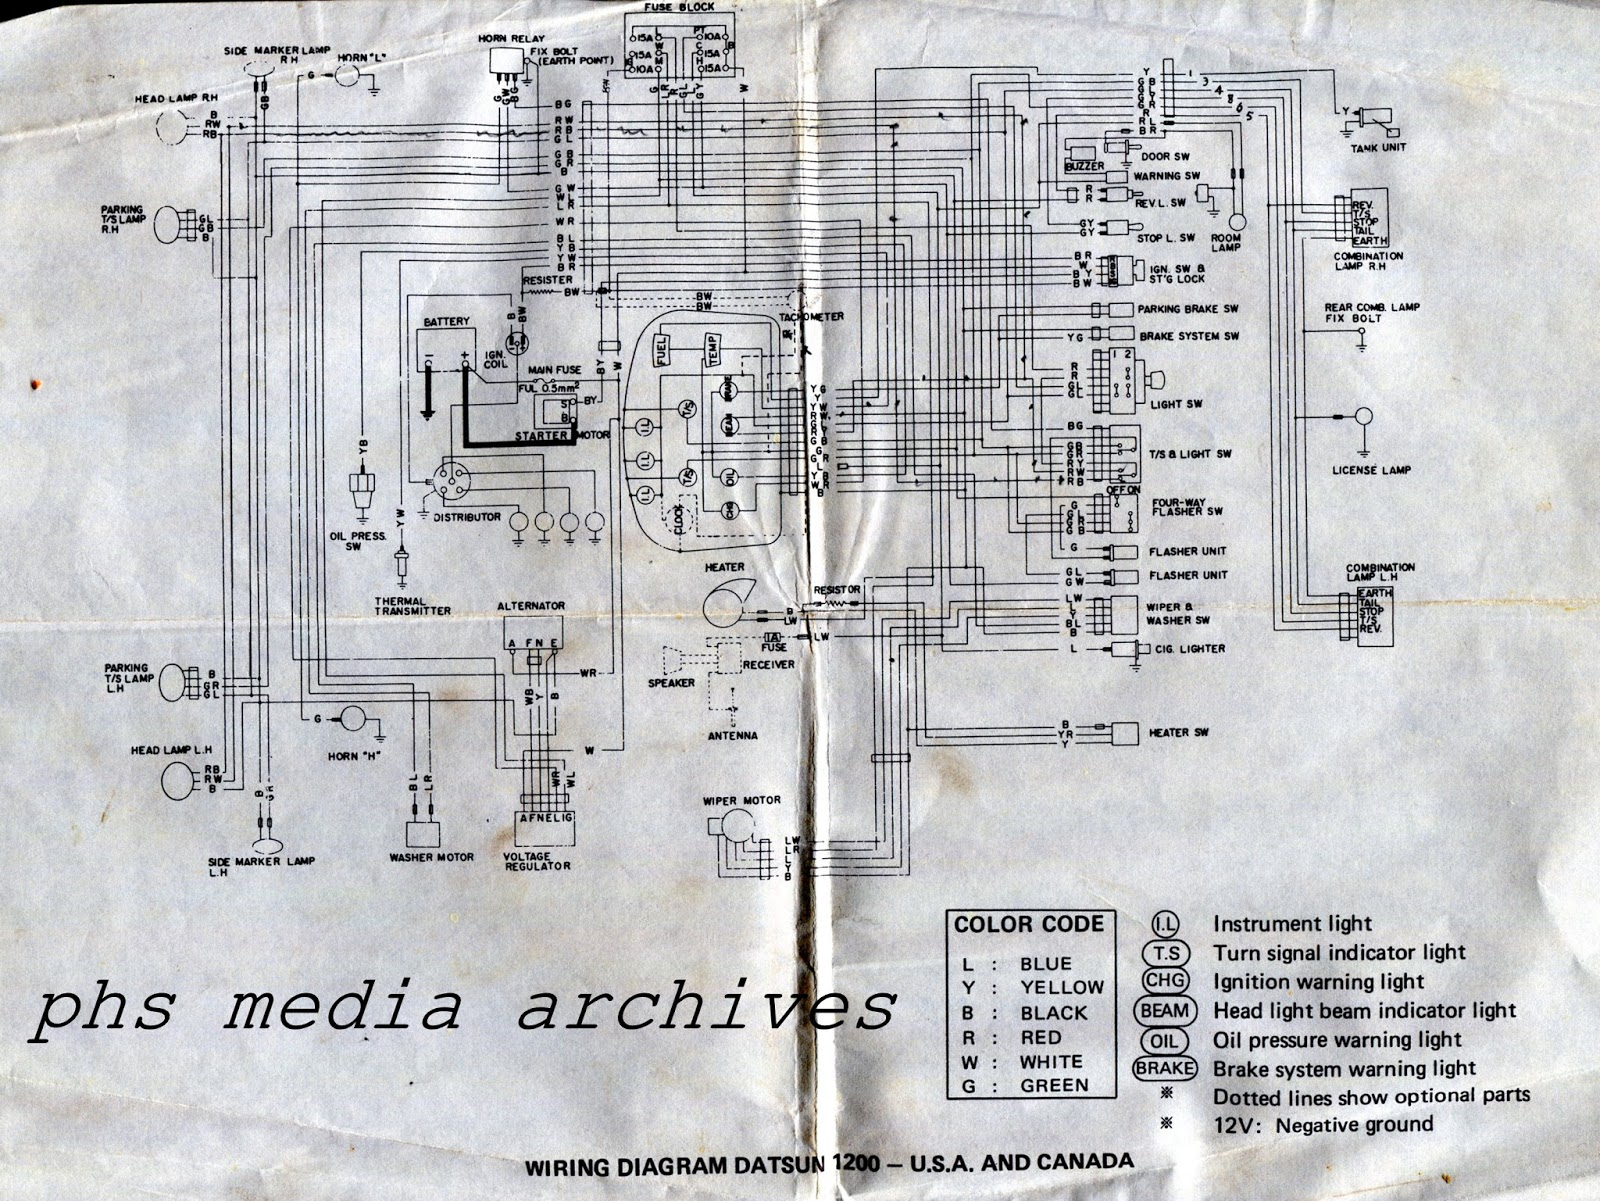 datsun 521 wiring diagram schematic diagram downloaddatsun 521 wiring diagram oue granite decor uk  [ 1600 x 1201 Pixel ]